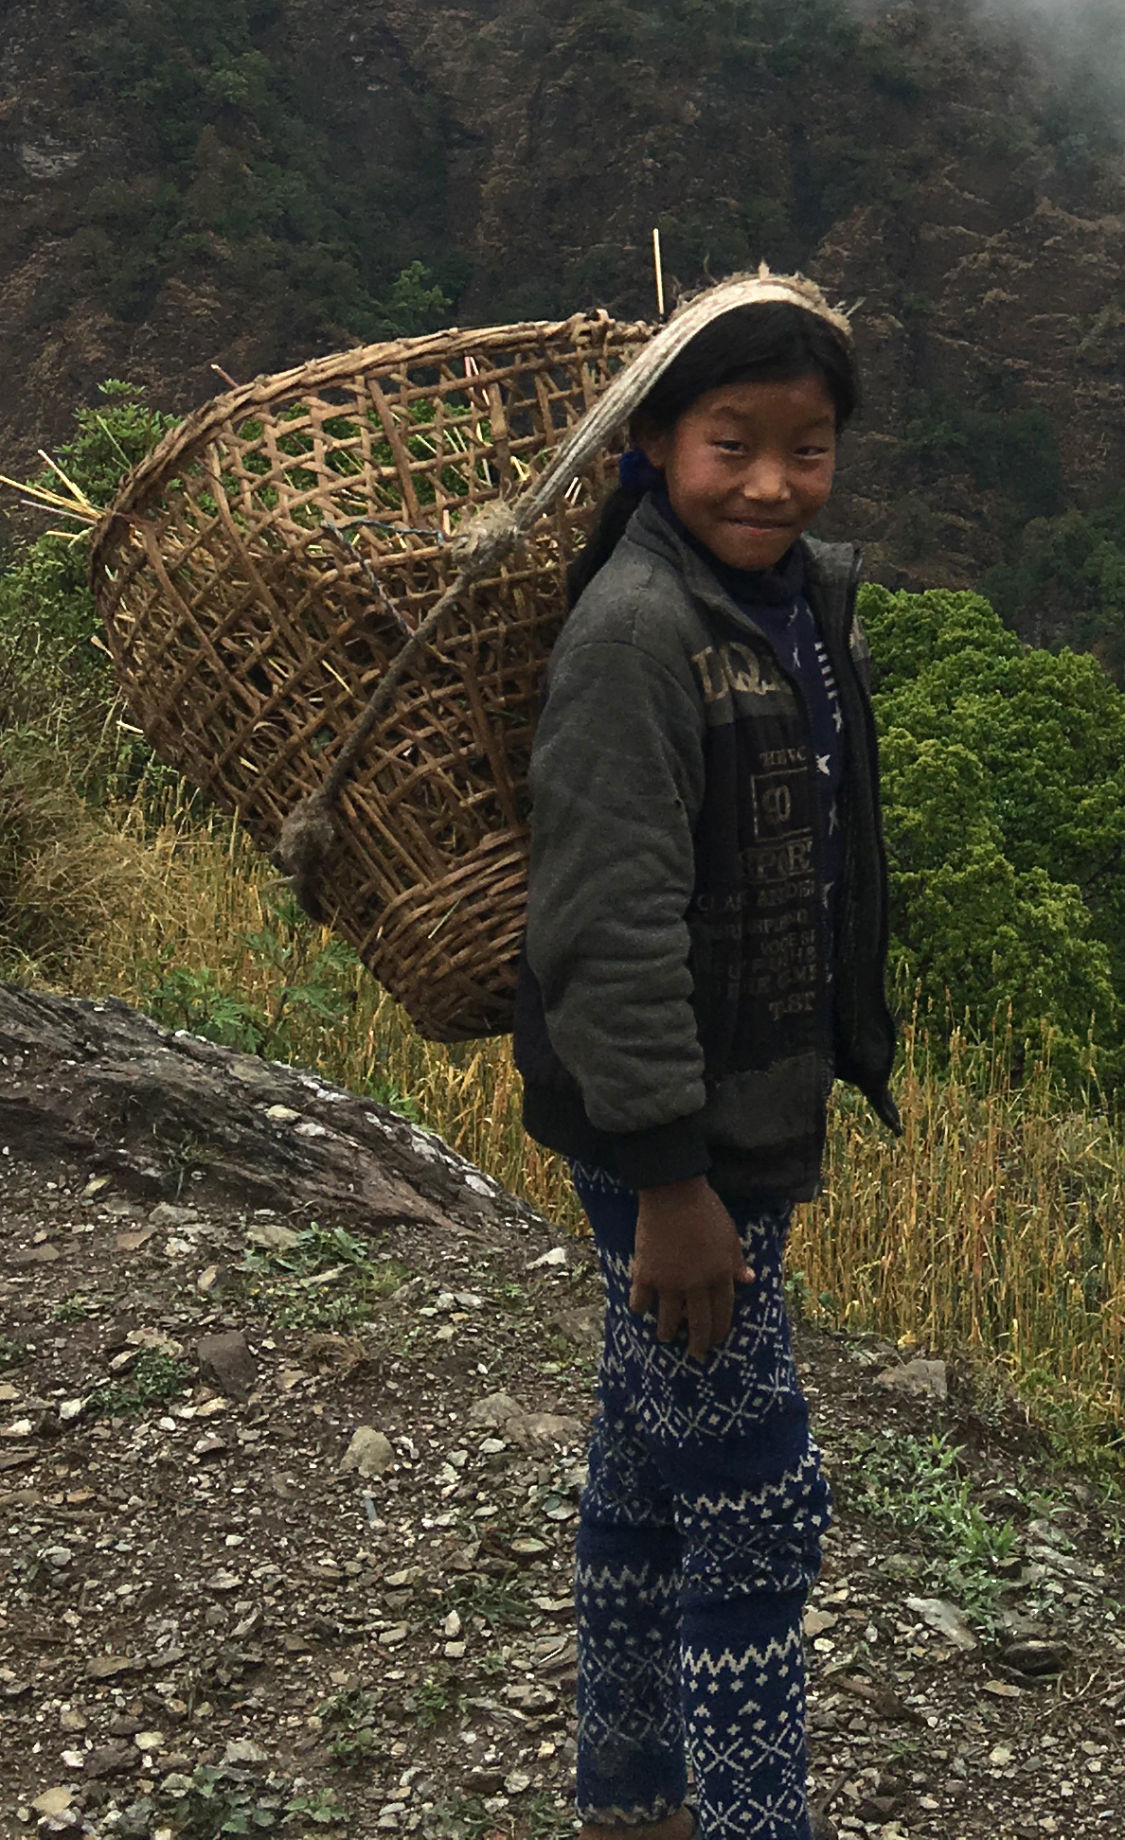 Girl and basket